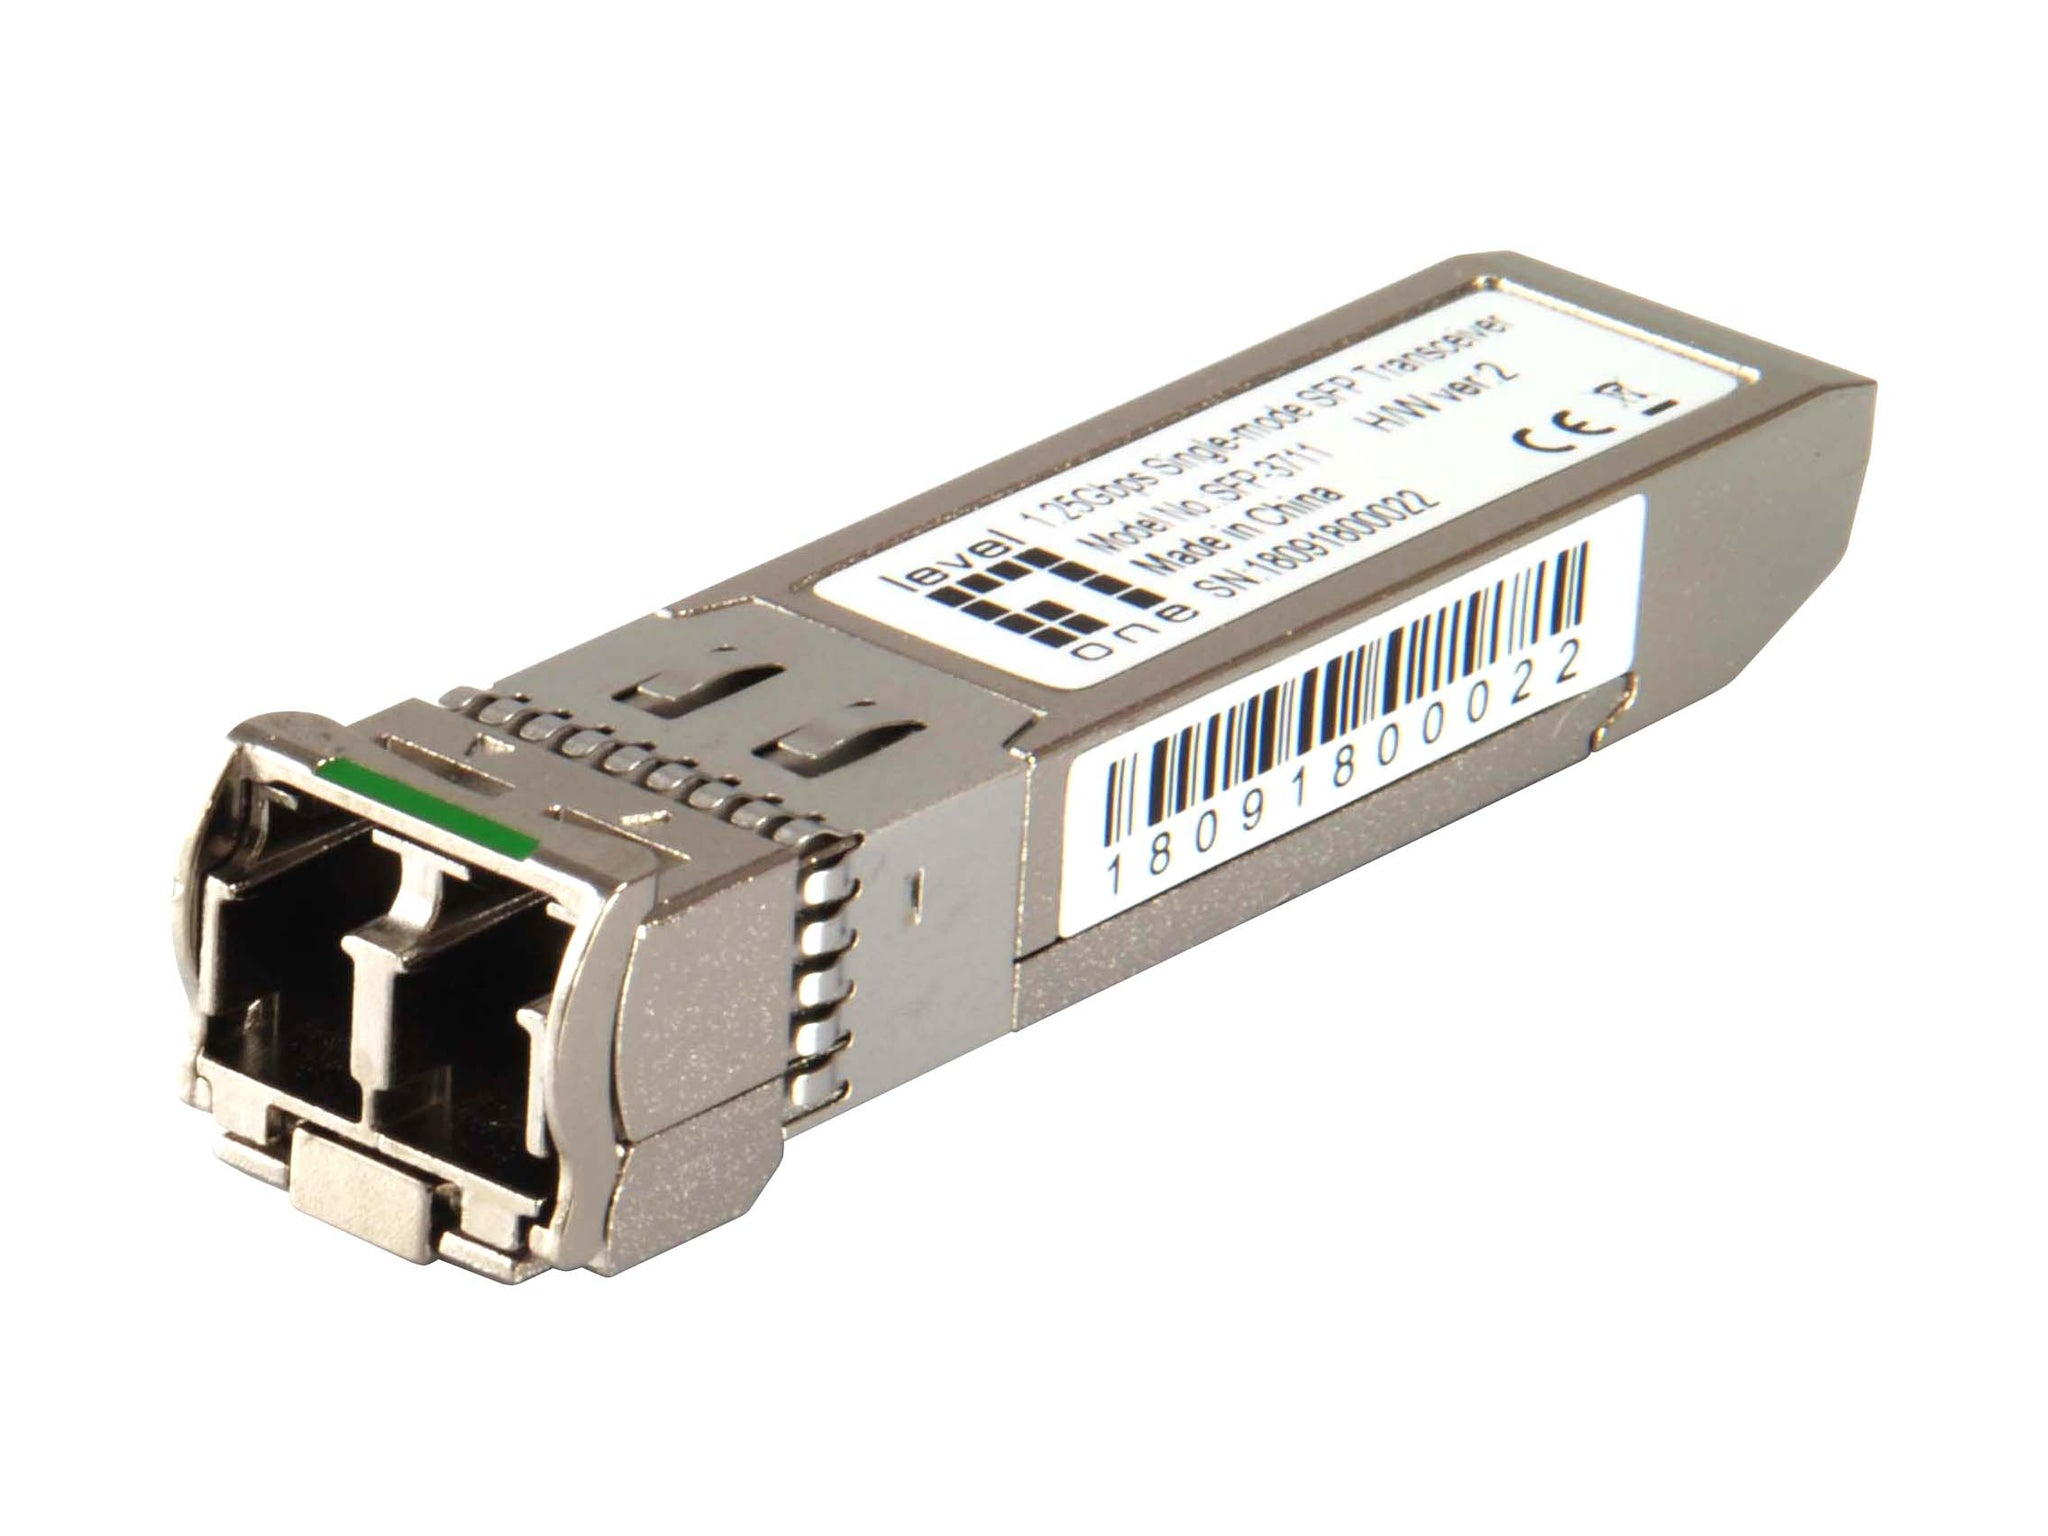 SFP-3711 1.25Gbps Single-mode SFP Transceiver, 120km, 1550nm